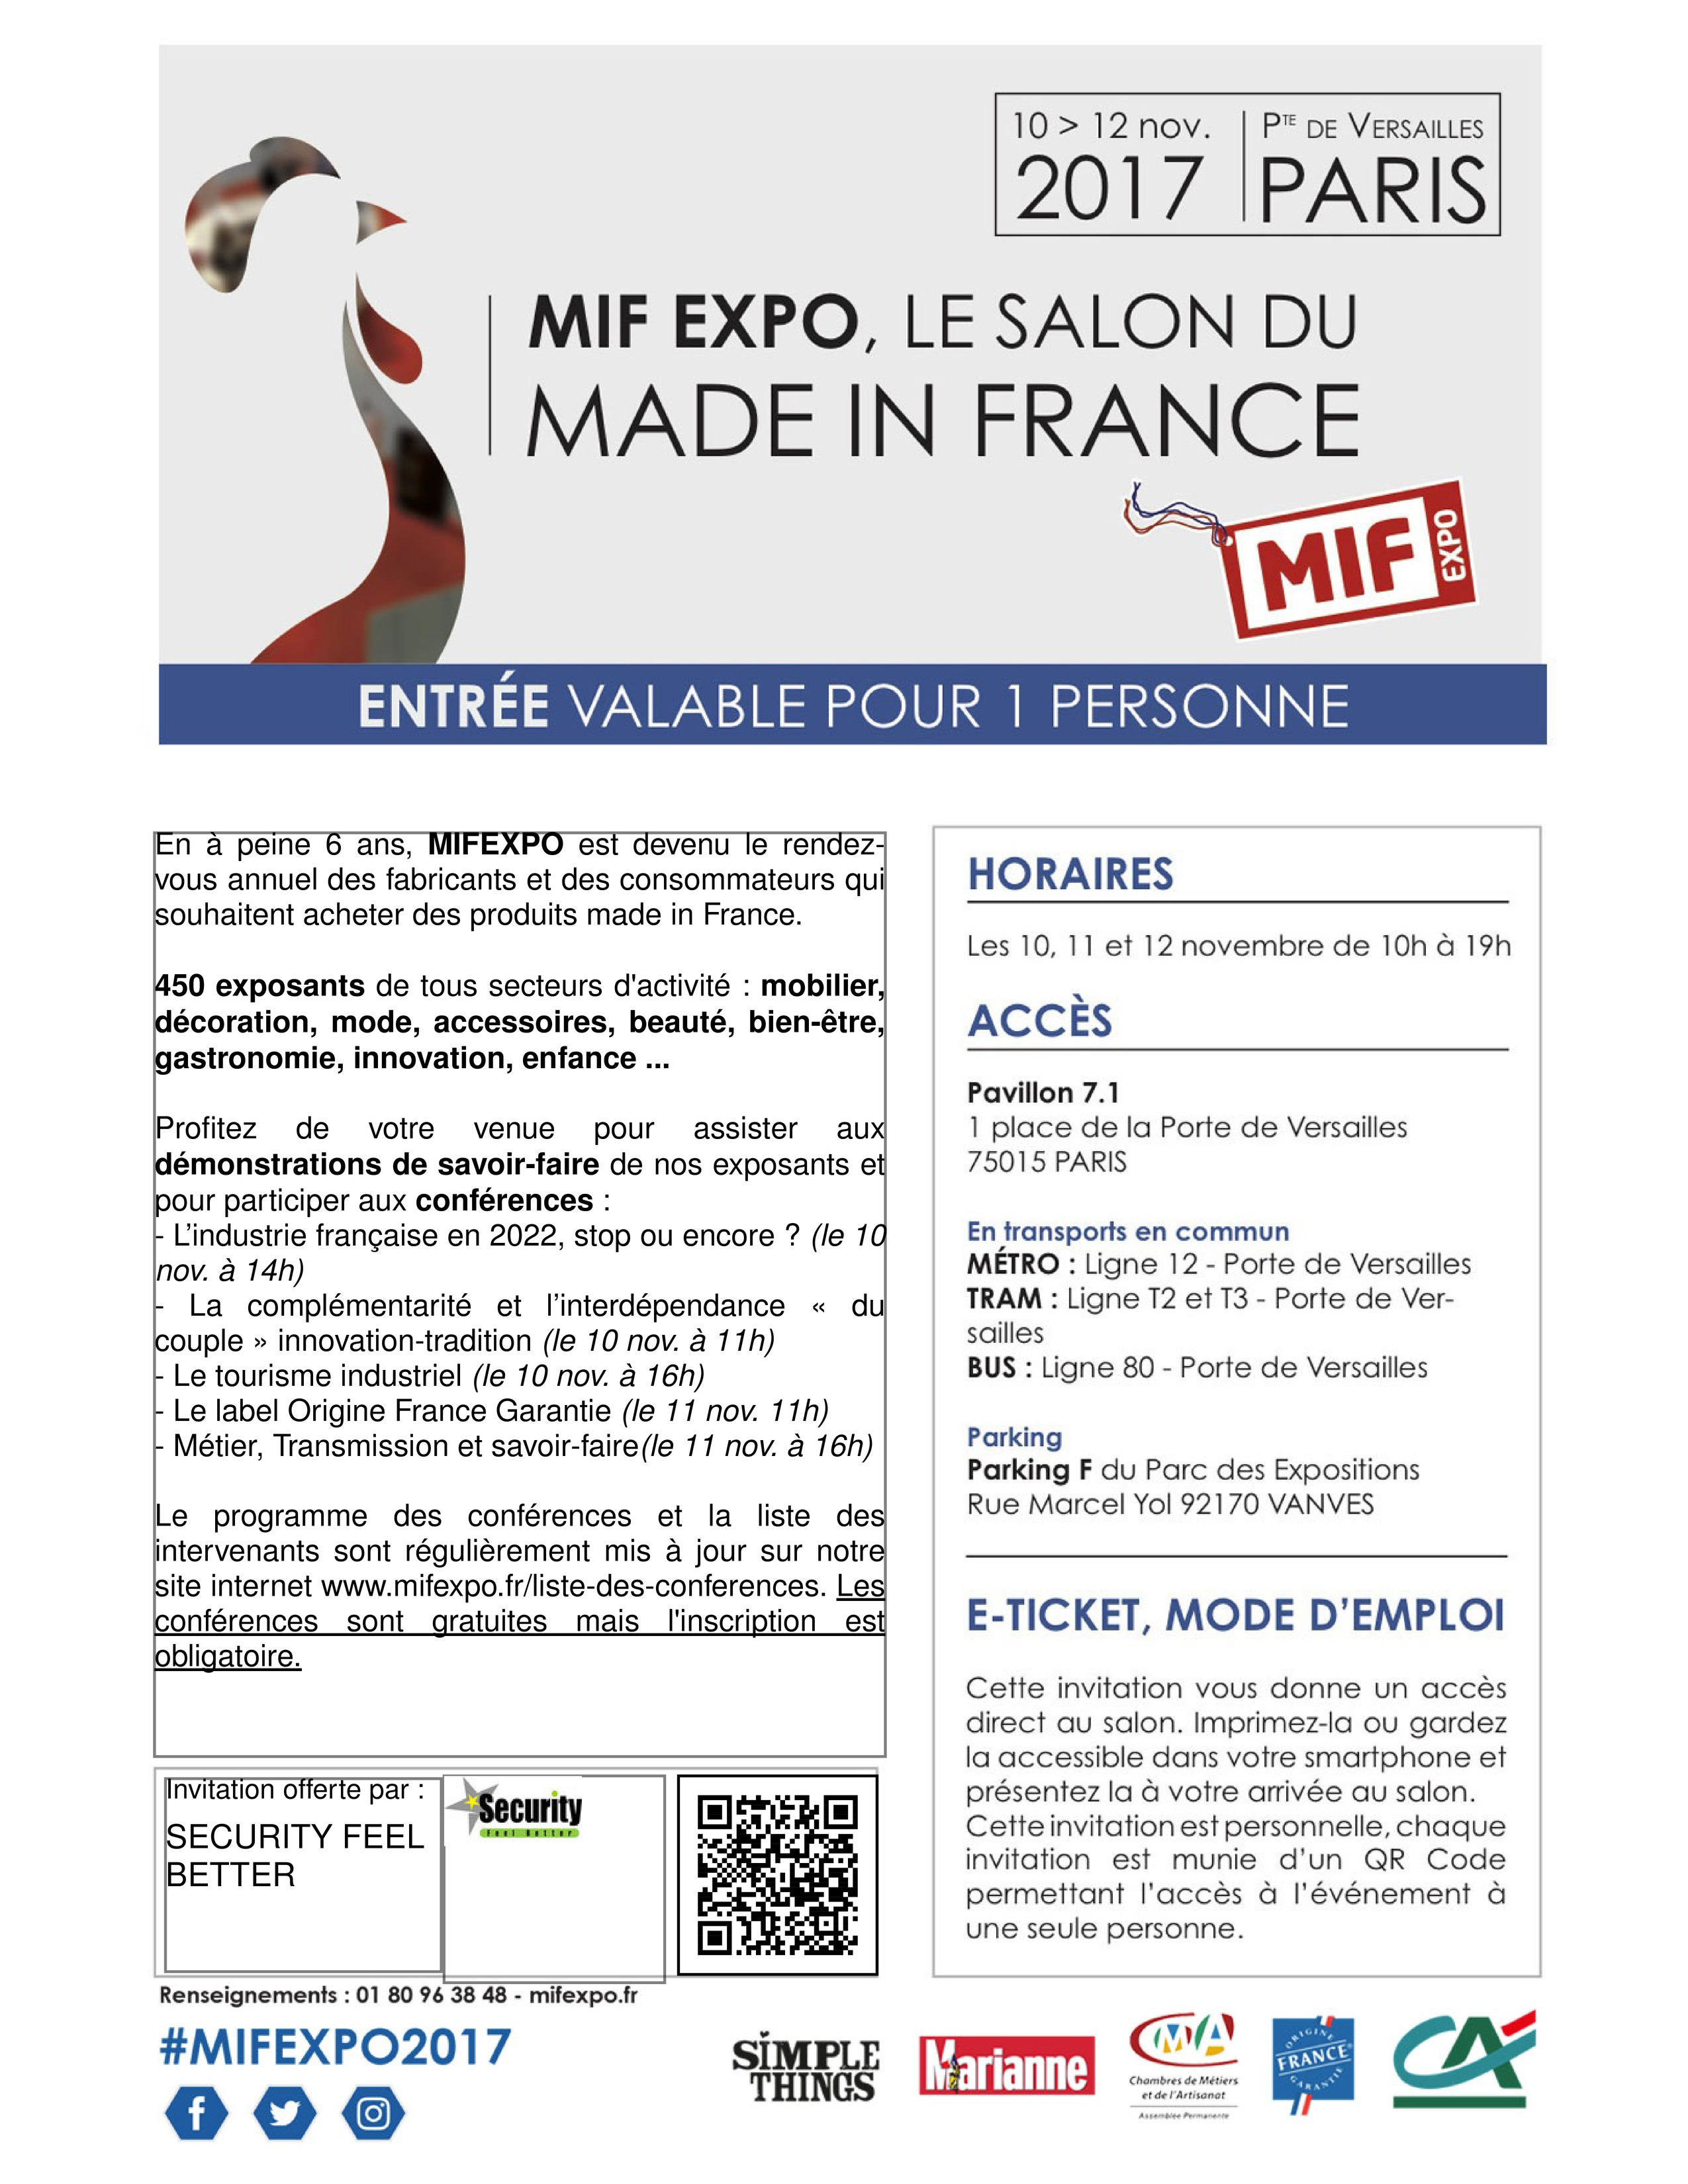 Salon made in france paris mif security feel better for Salon made in france